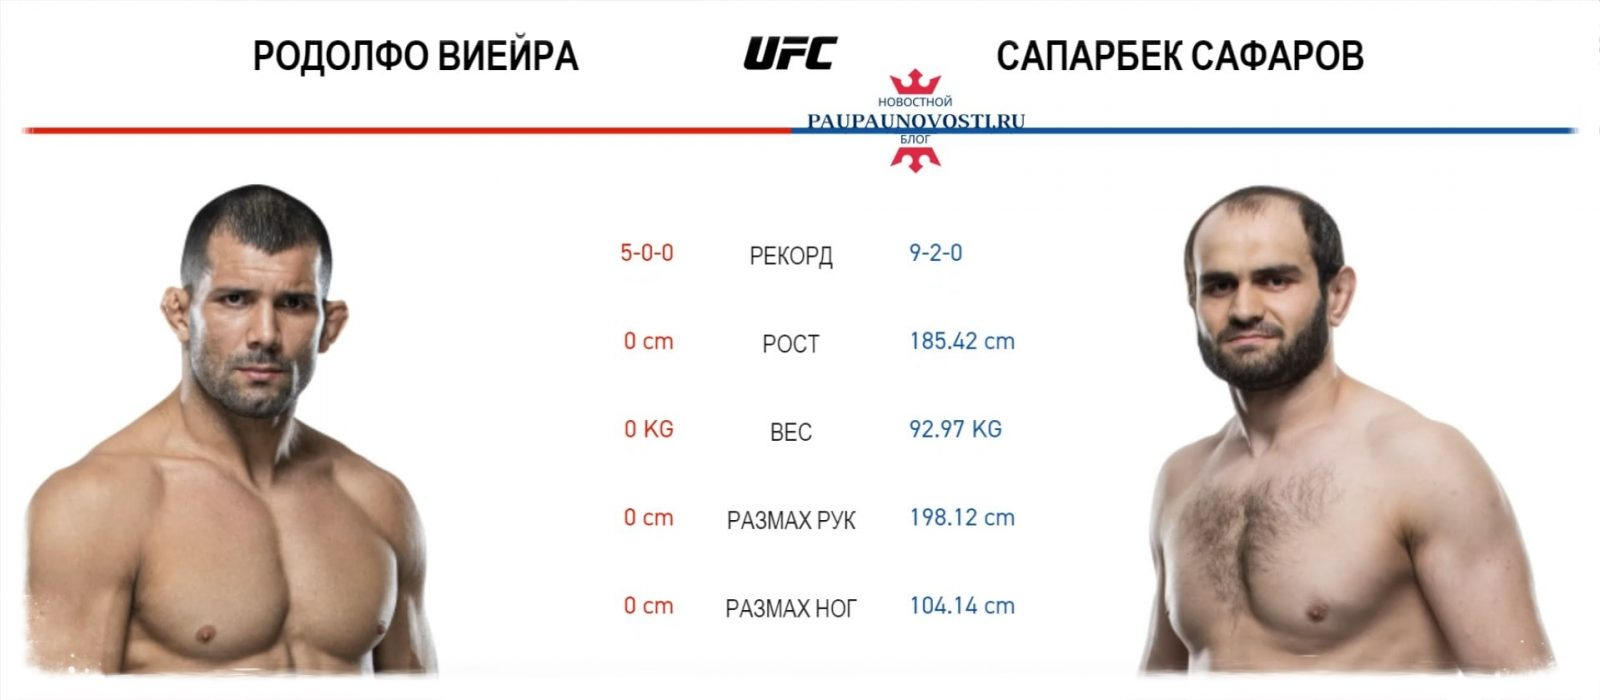 ufc-248-kard-i-data-adesanya-vs-romero